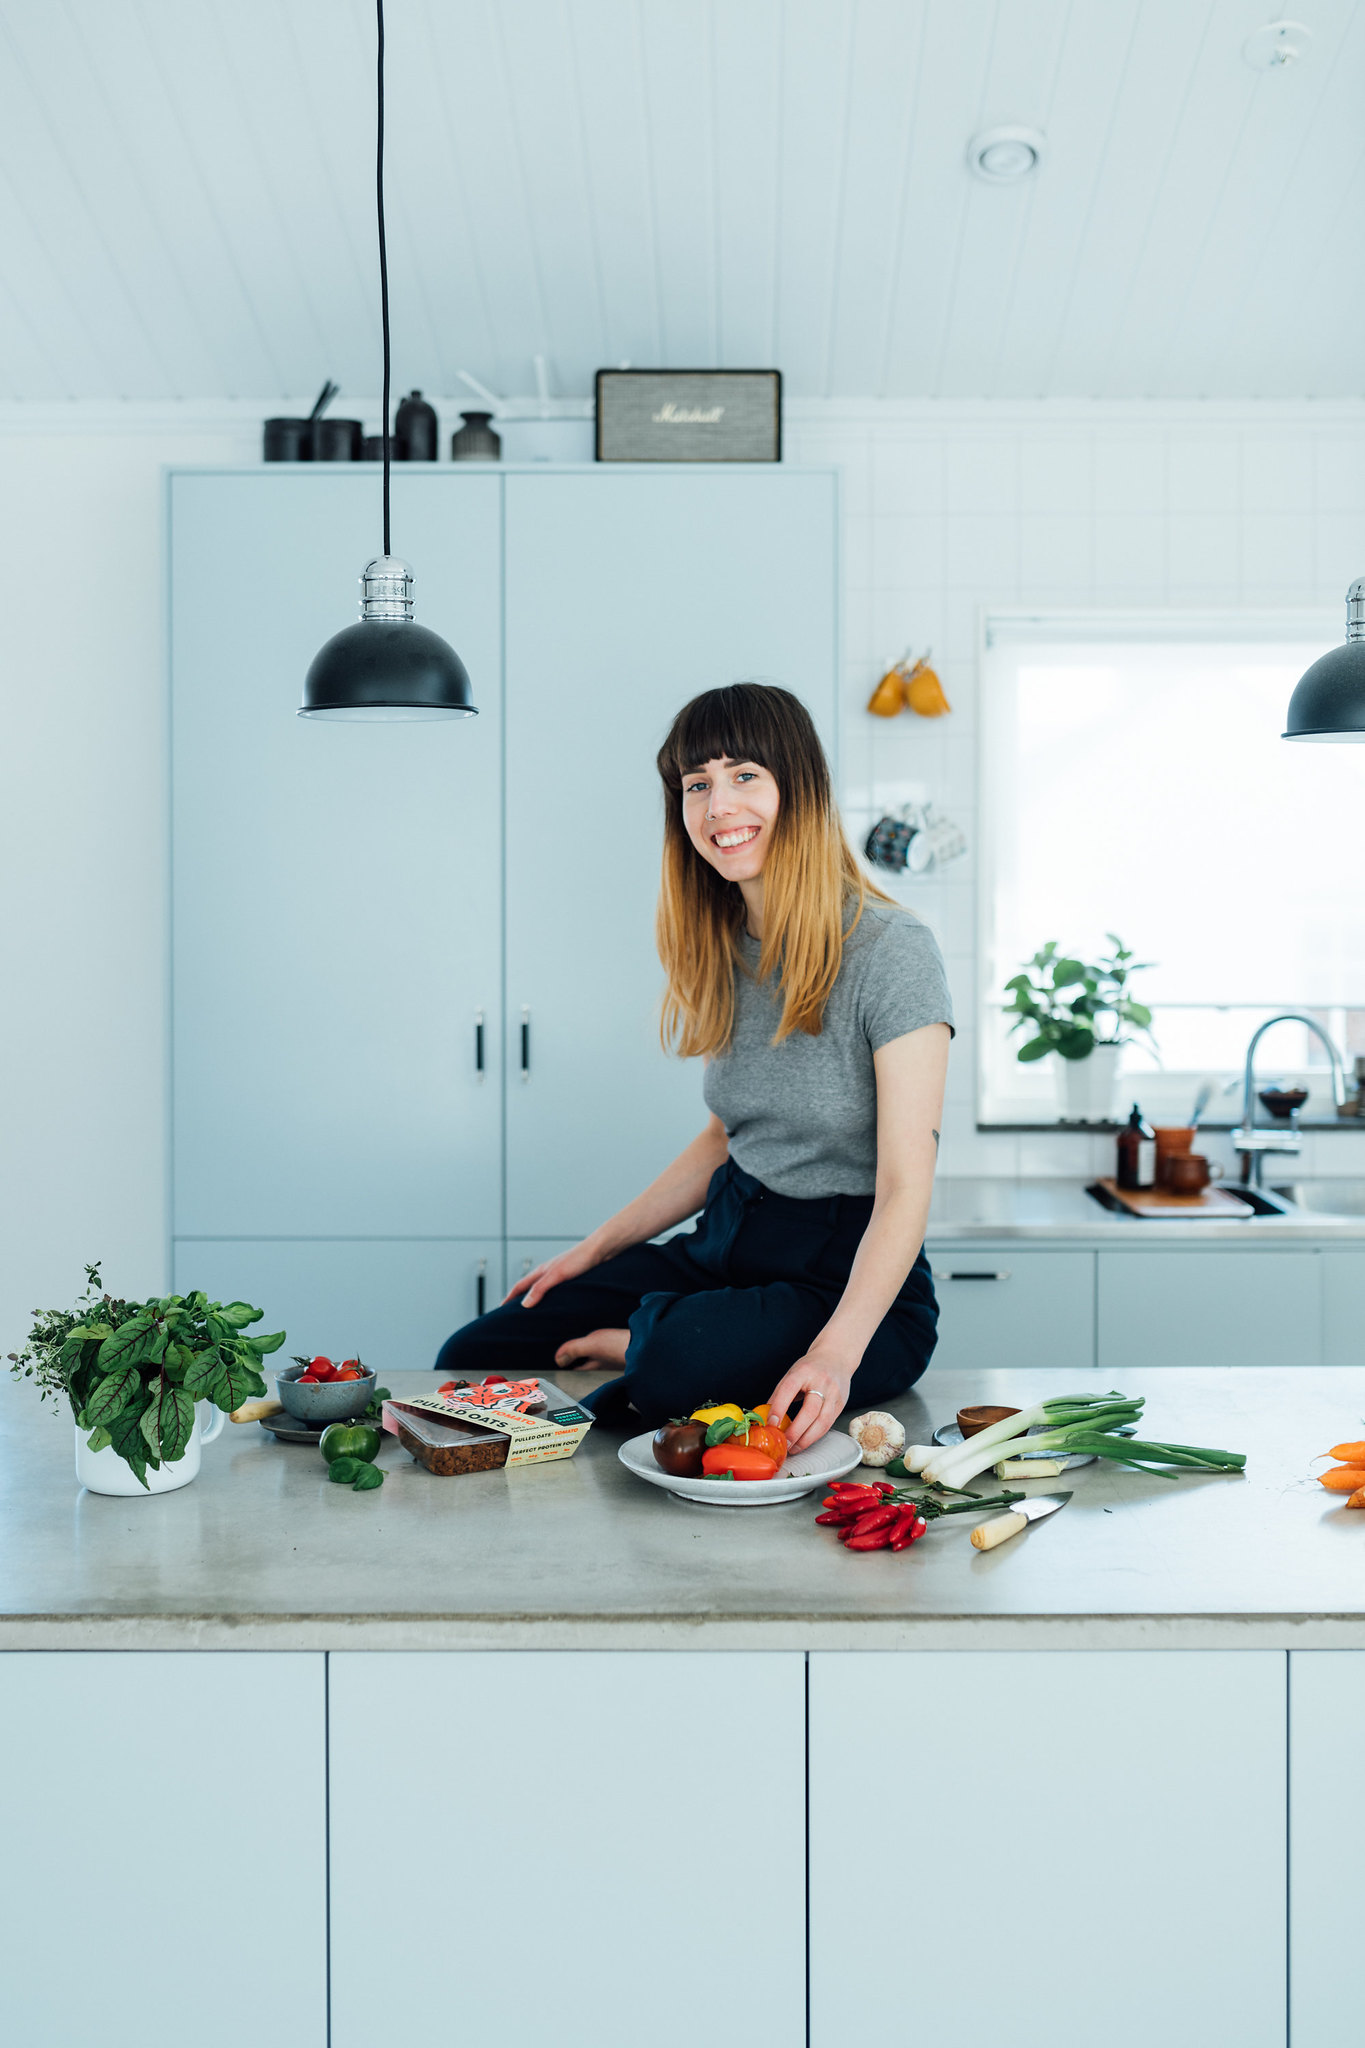 Cashew Kitchen, captured by Poppy Photography